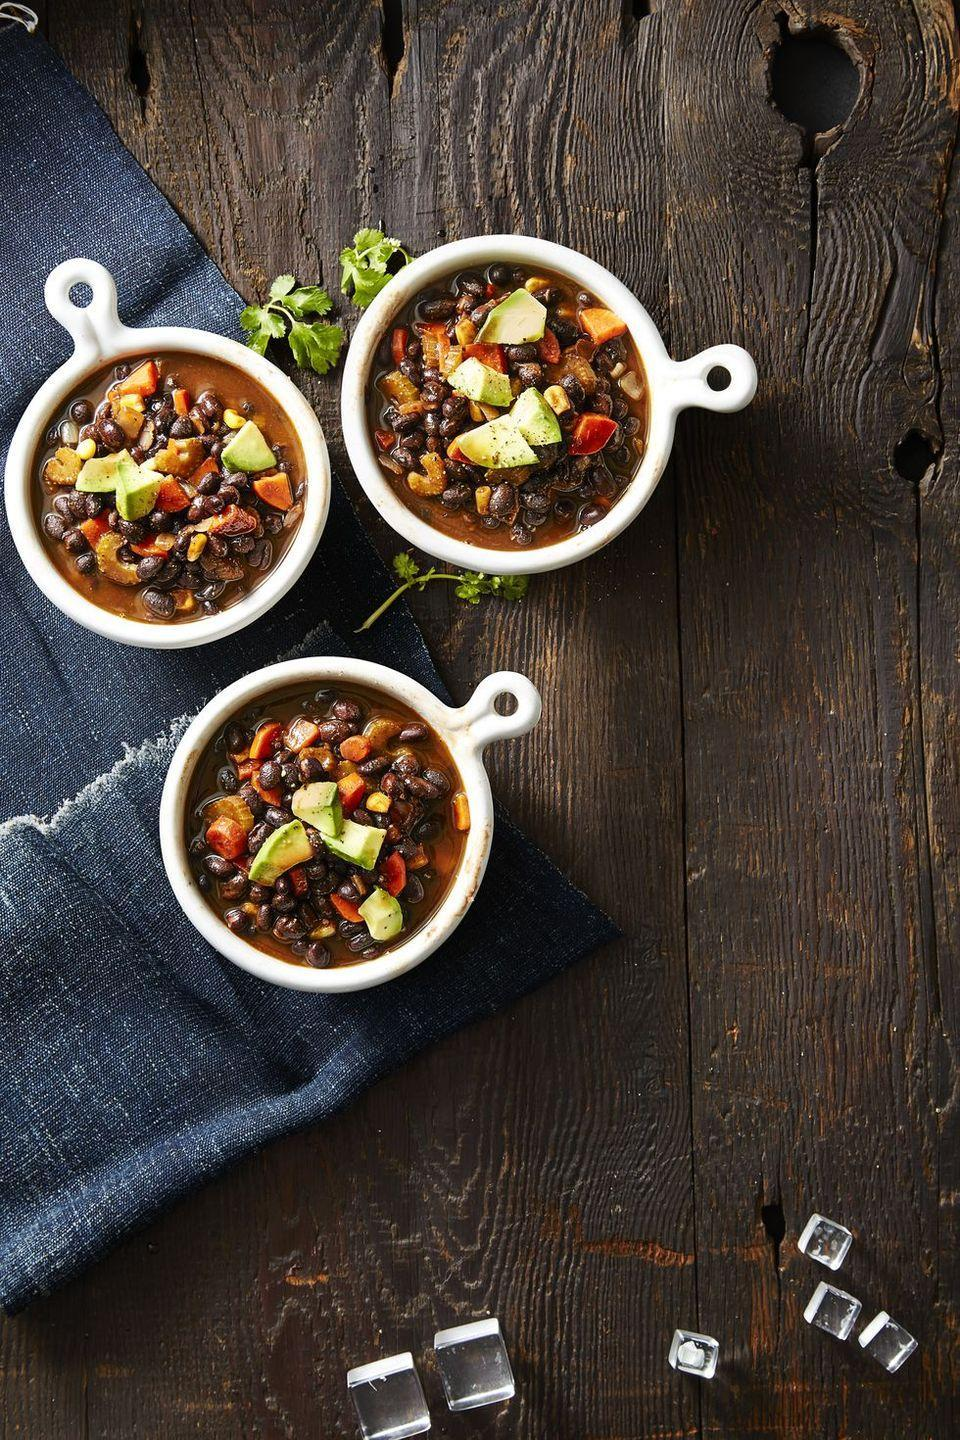 """<p>This healthy soup recipe may technically count as vegan but it's sure to fill you up. </p><p><em><a href=""""https://www.goodhousekeeping.com/food-recipes/healthy/a42397/smoky-vegan-black-bean-soup-recipe/"""" rel=""""nofollow noopener"""" target=""""_blank"""" data-ylk=""""slk:Get the recipe for Smoky Vegan Black Bean Soup »"""" class=""""link rapid-noclick-resp"""">Get the recipe for Smoky Vegan Black Bean Soup »</a></em></p>"""